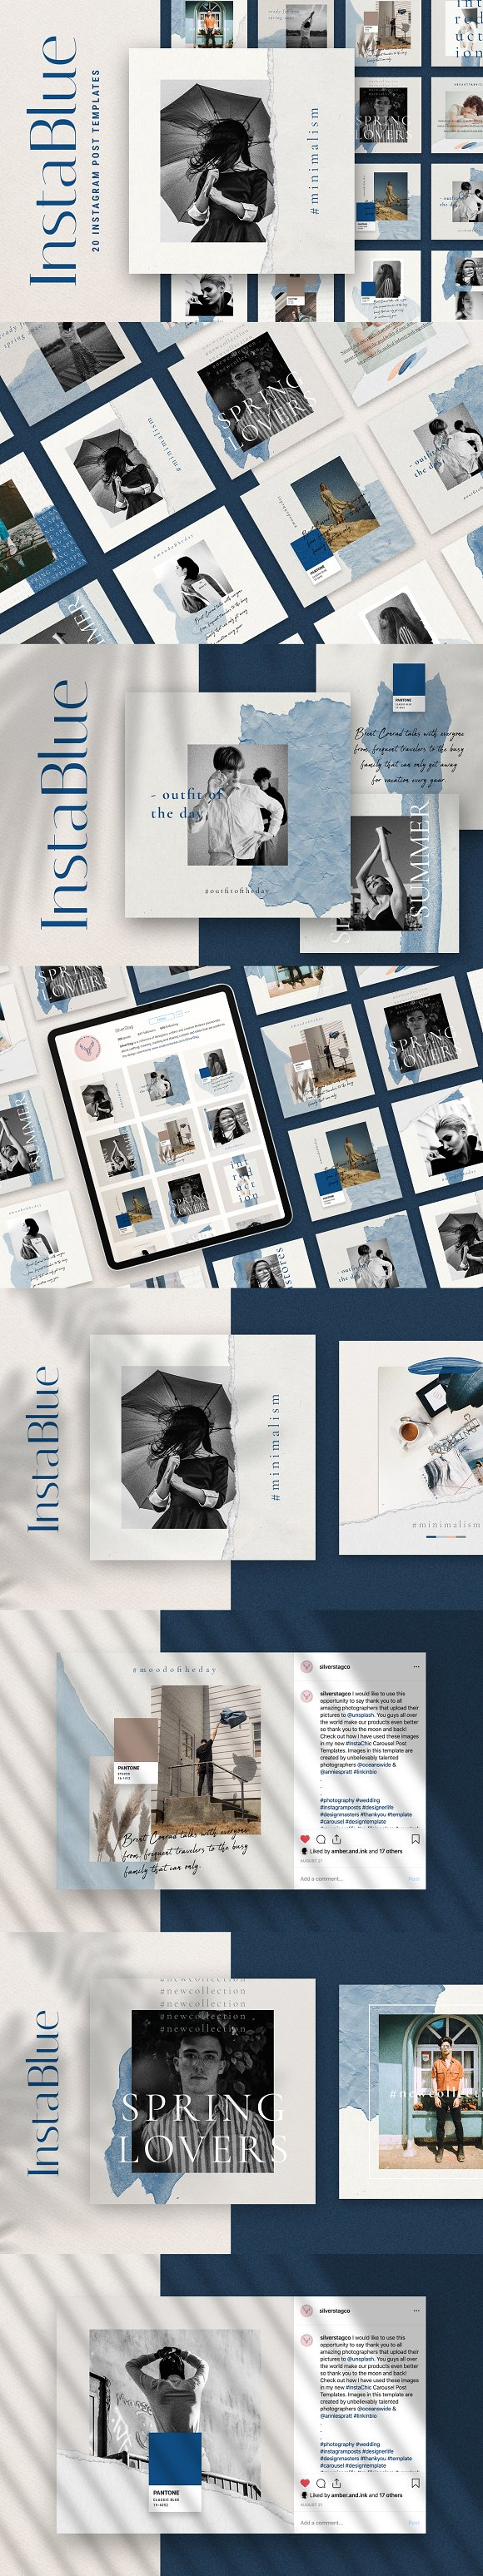 Ultimate Instagram Bundle + Updates in Instagram Templates - product preview 23